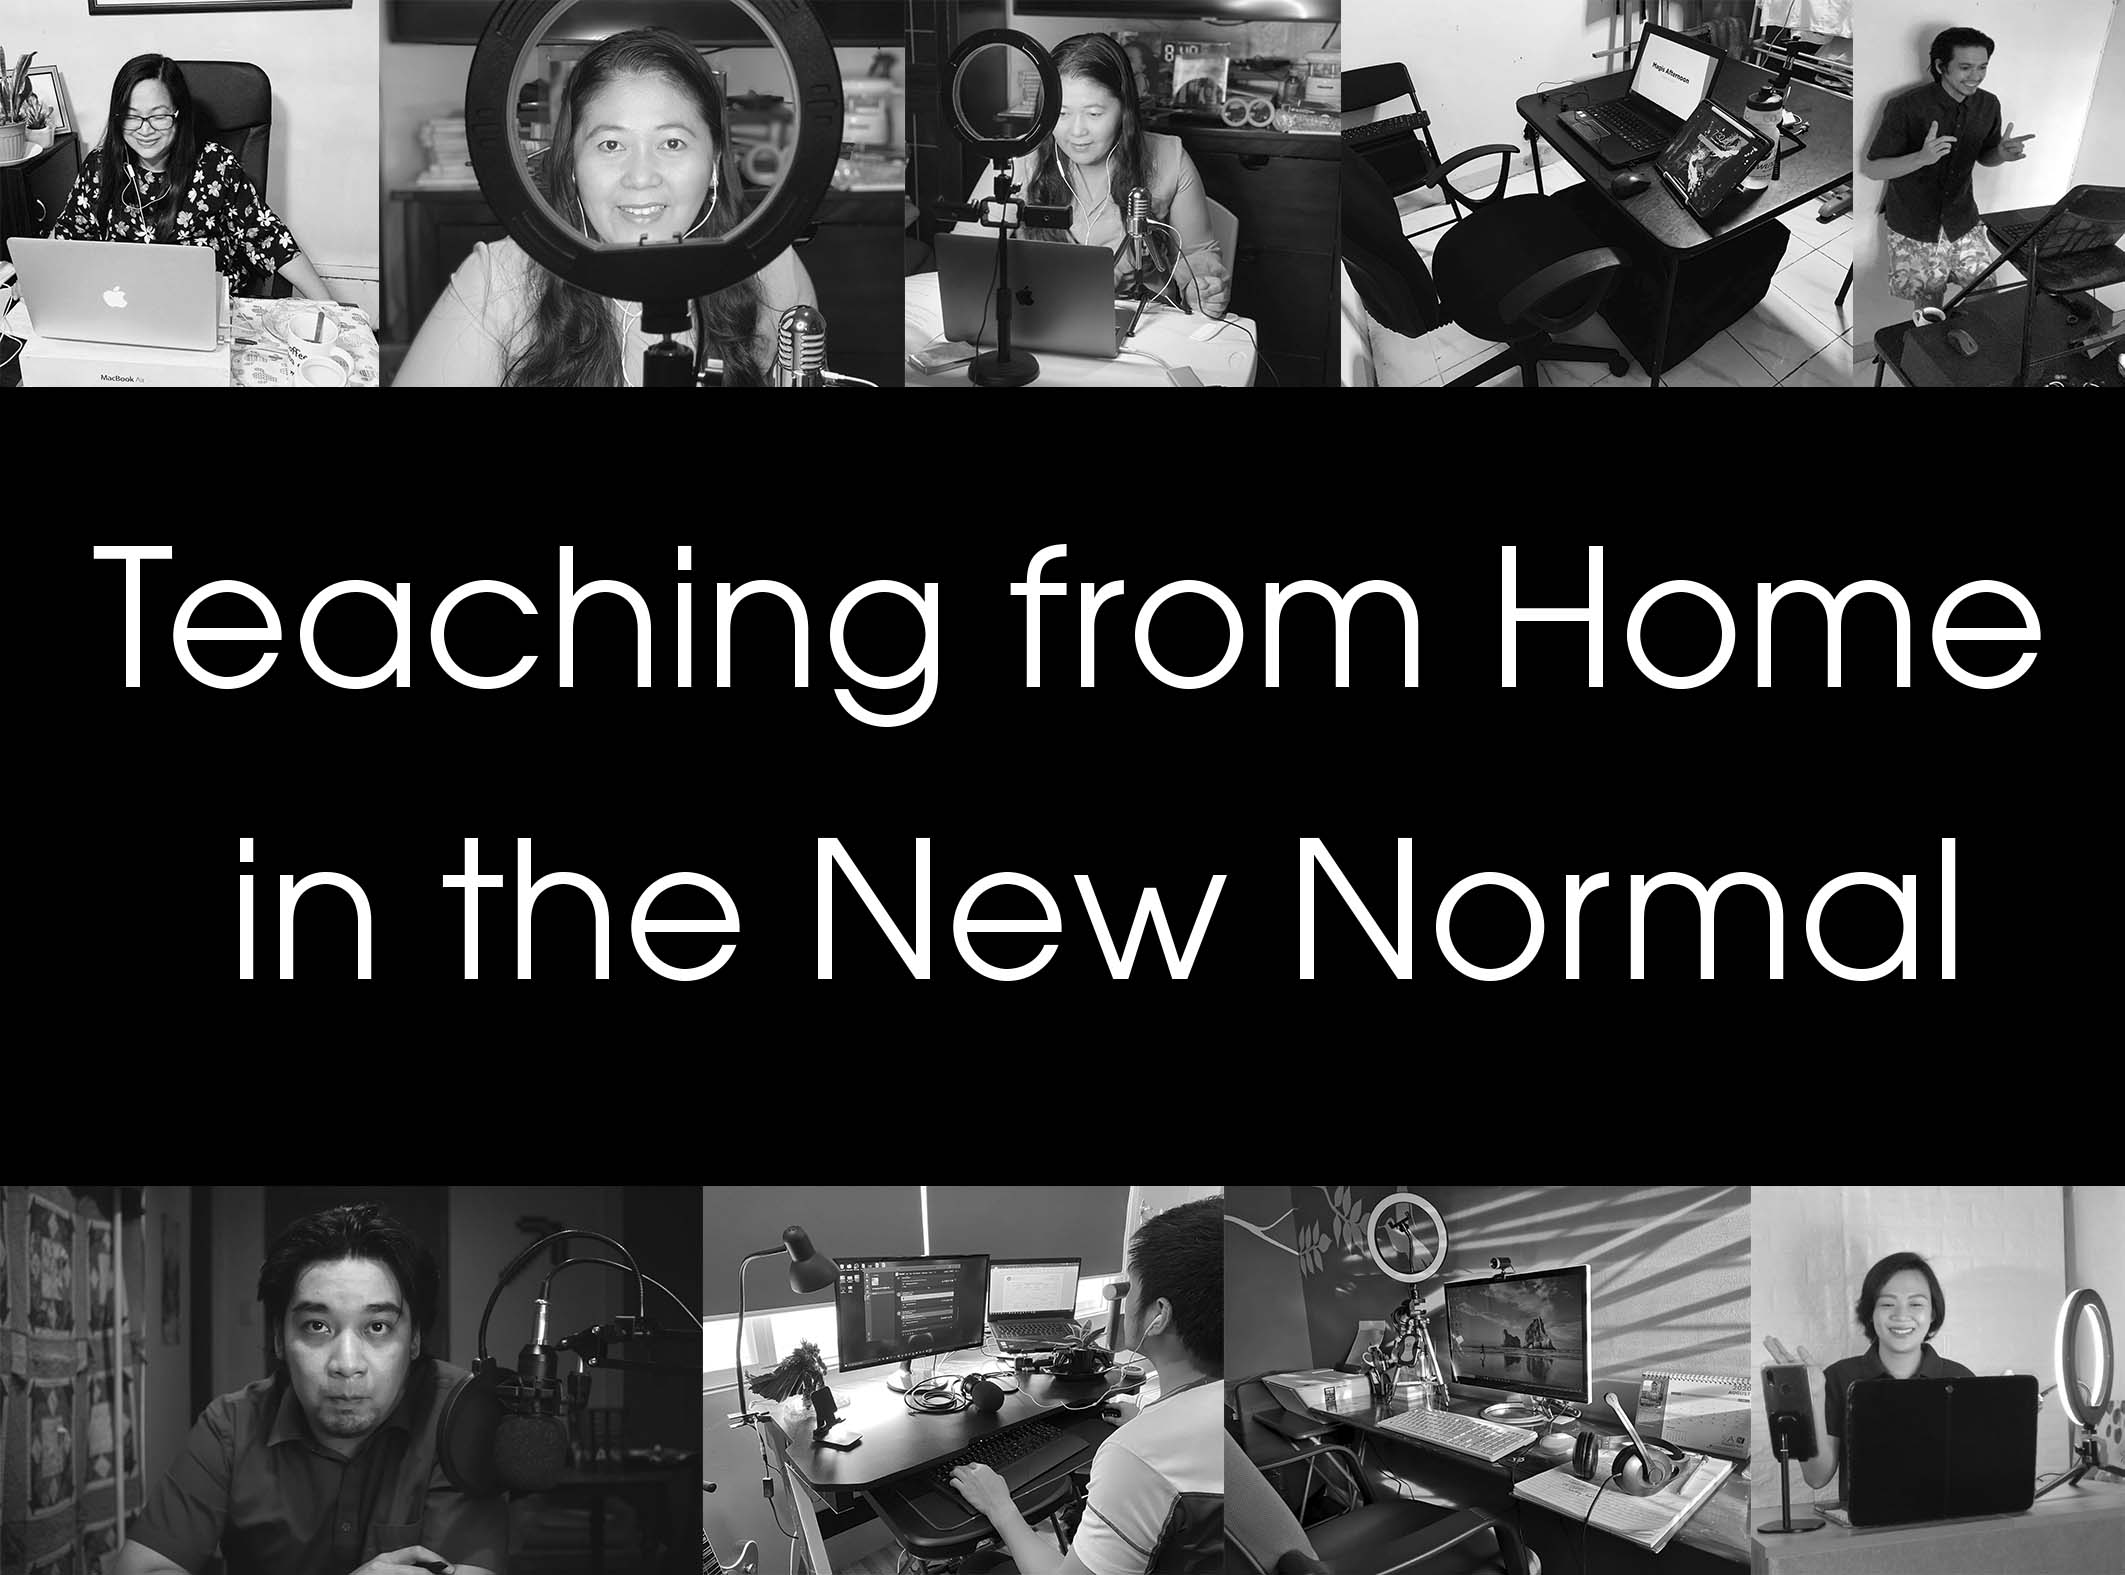 Lights, Camera, Action! Your Teachers are Ready! Teaching from Home in the New Normal